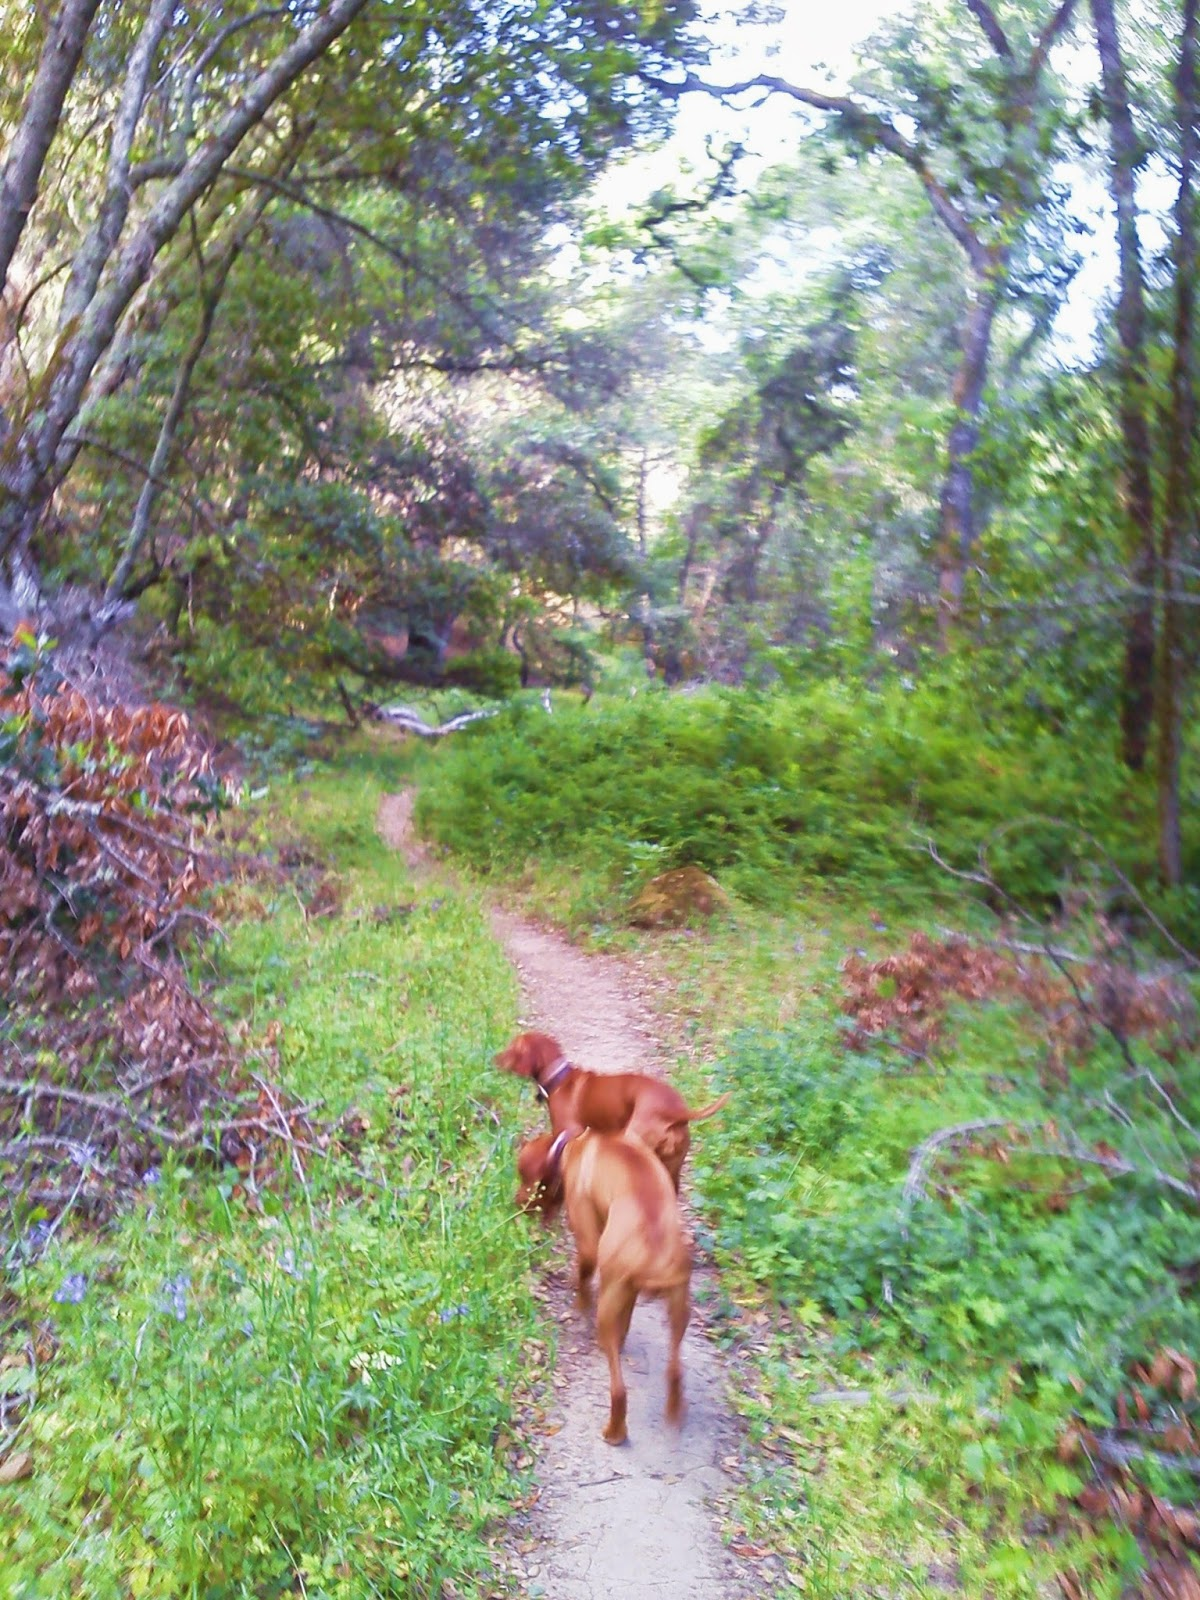 Redbirddog a hungarian pointer vizsla blog the road less traveled the urge is to take the most comfortable path the road with least resistance the shortest or most traveled route sciox Choice Image